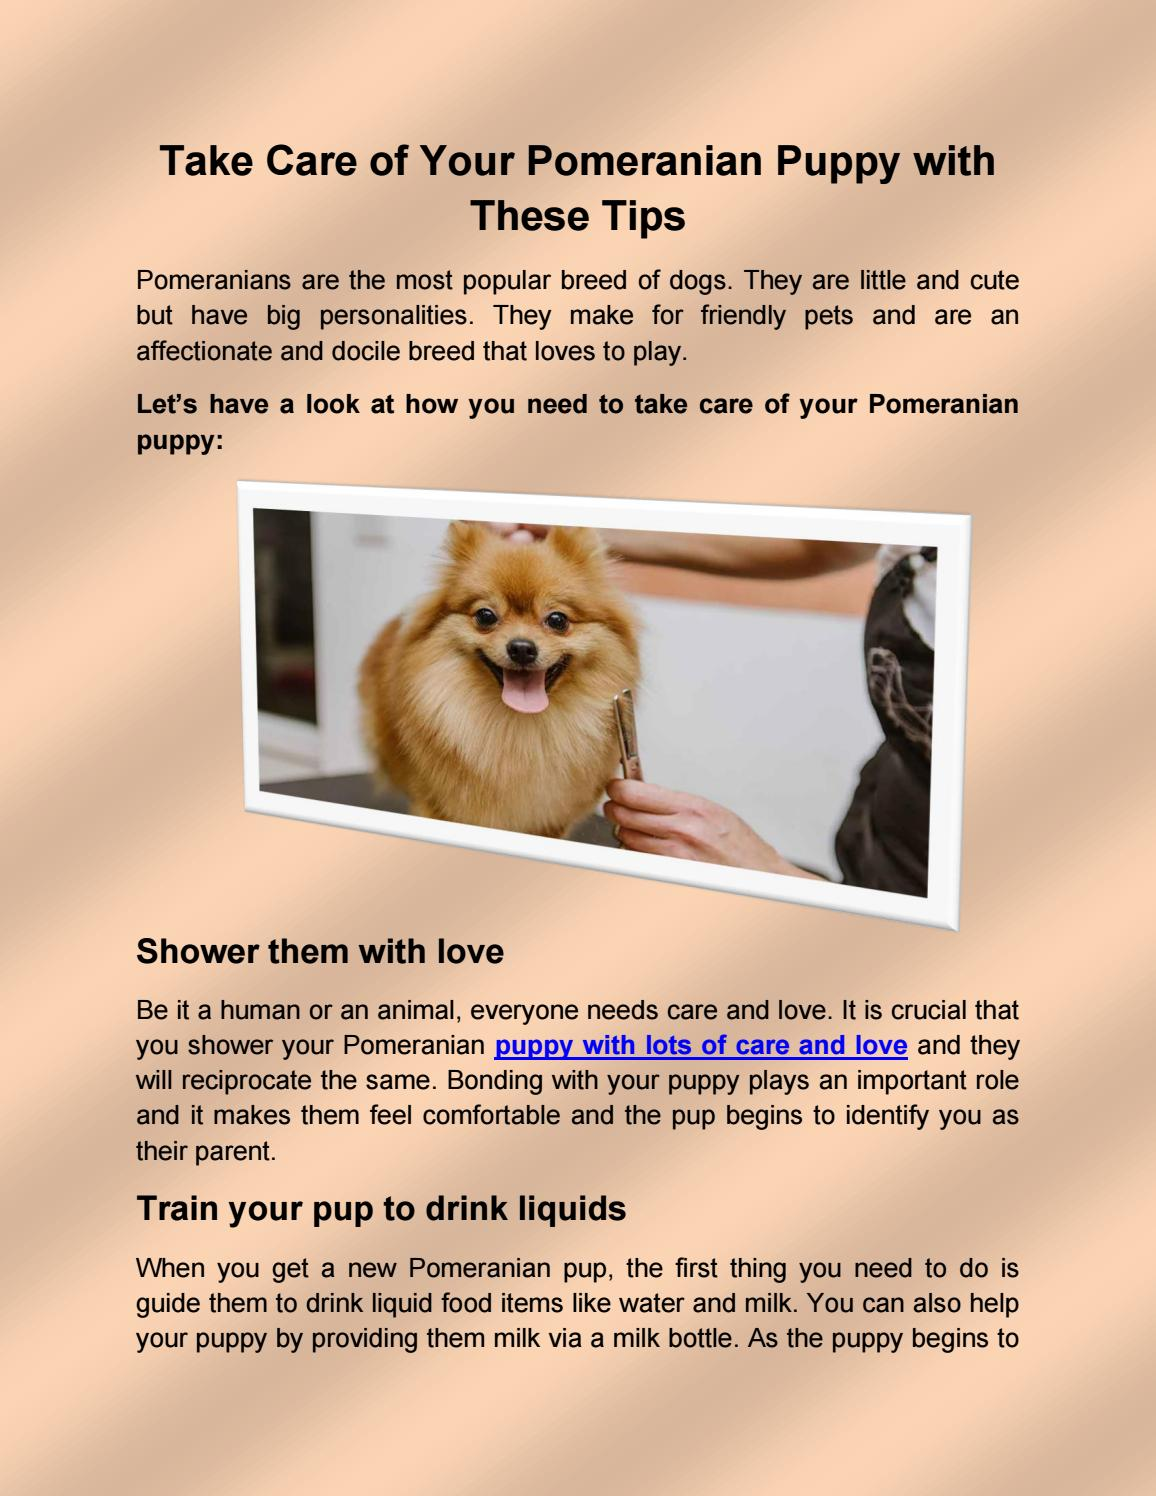 Take Care Of Your Pomeranian Puppy With These Tips By Flauntpet Issuu